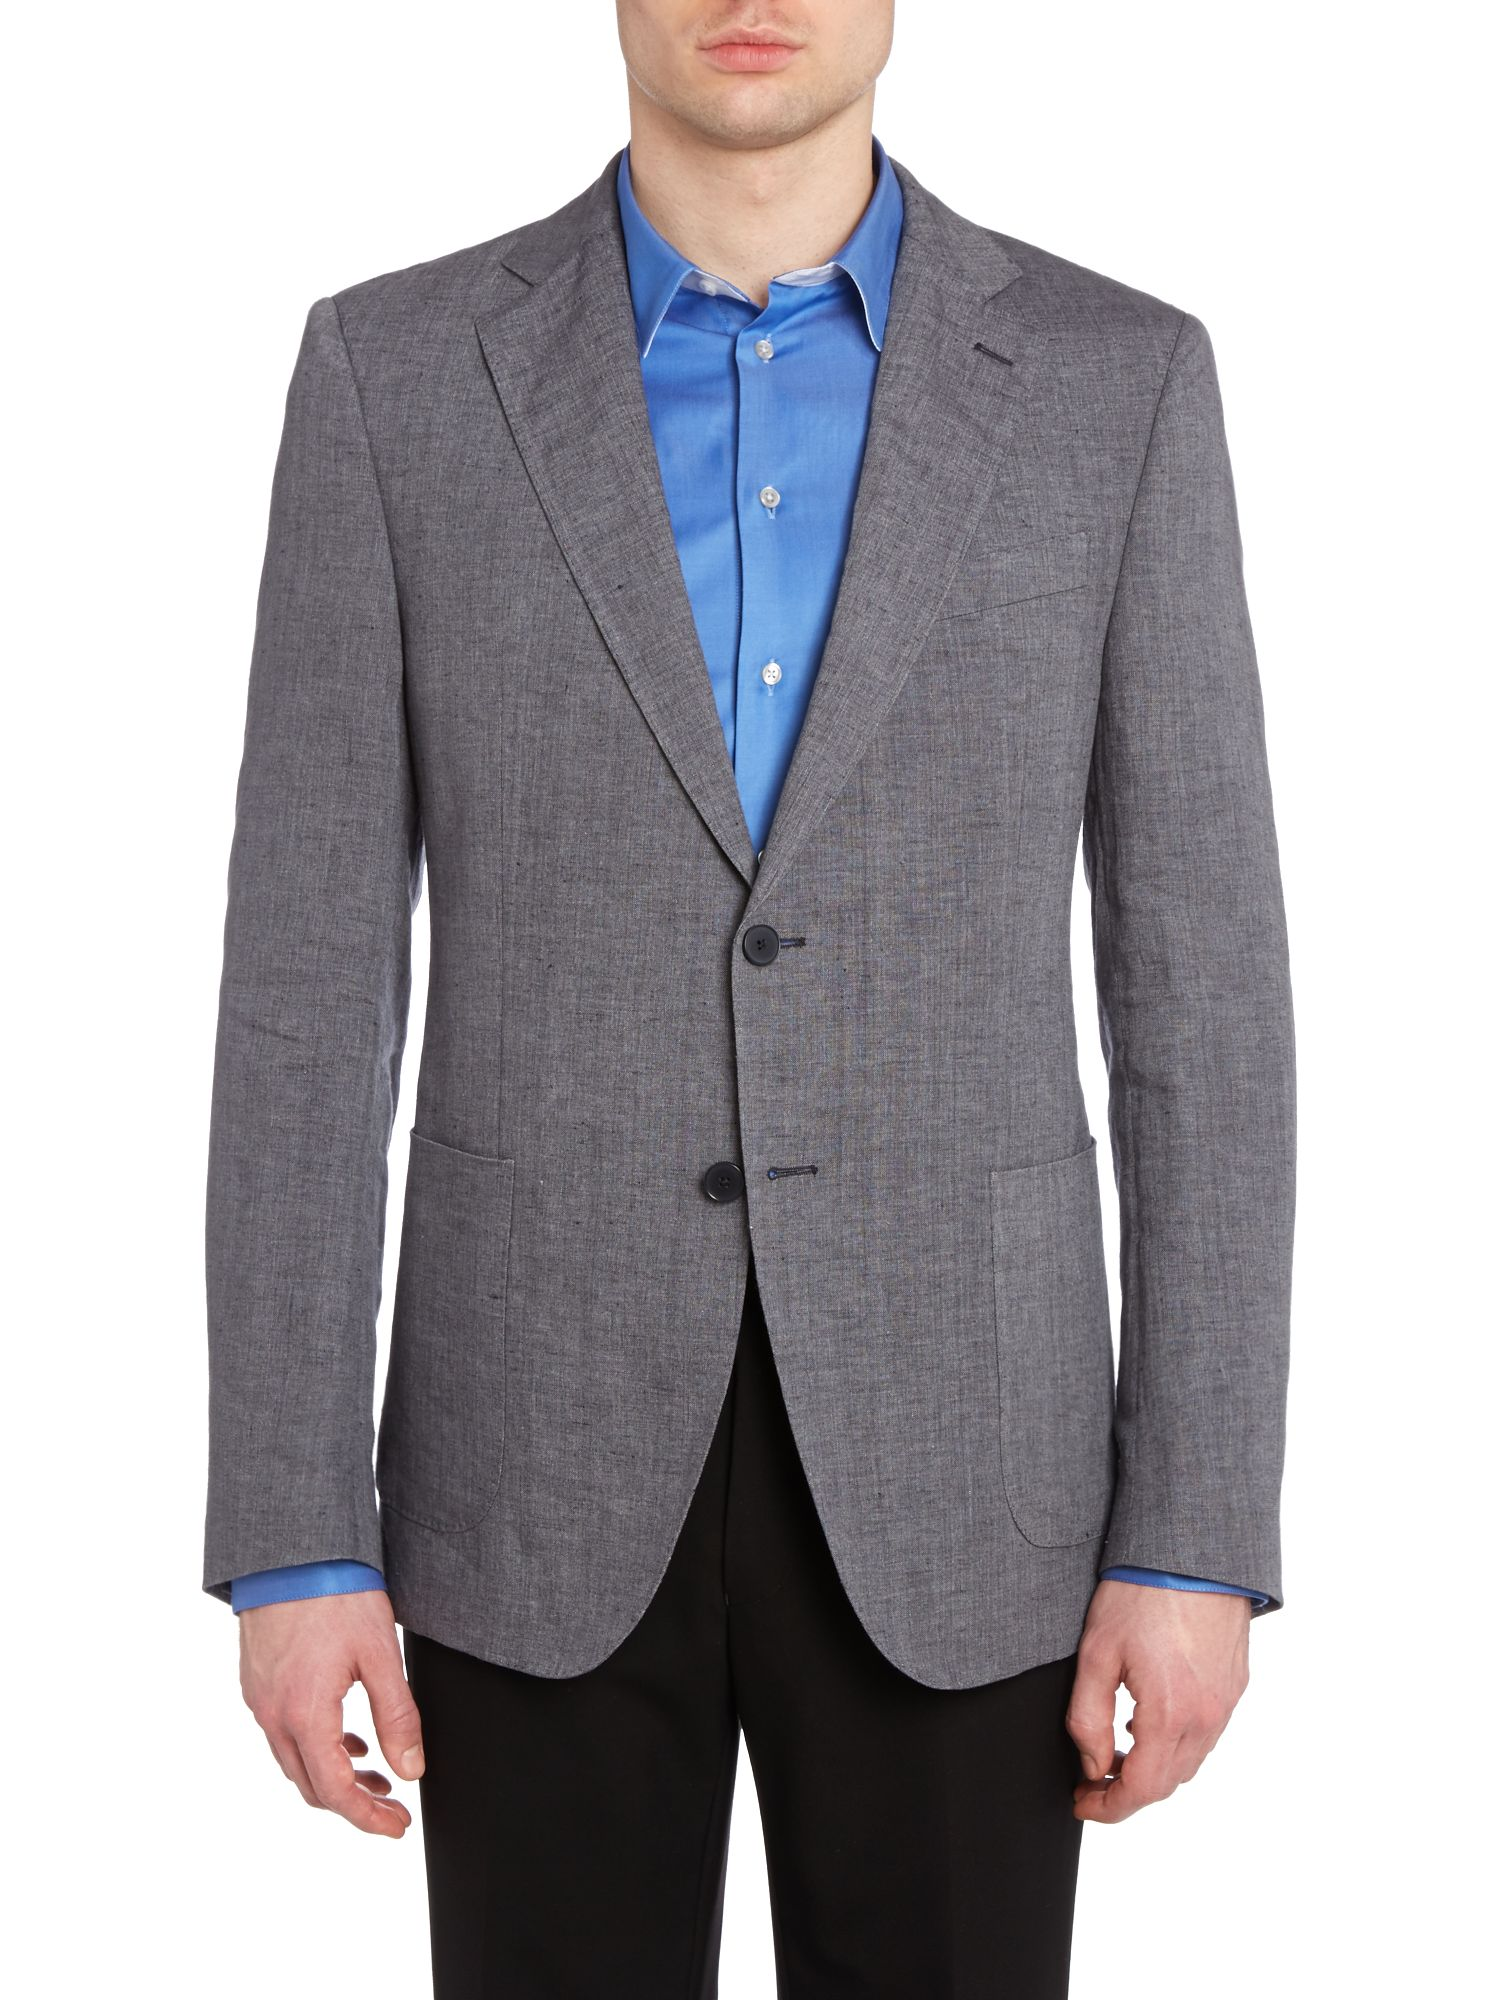 Linen blazer lexington